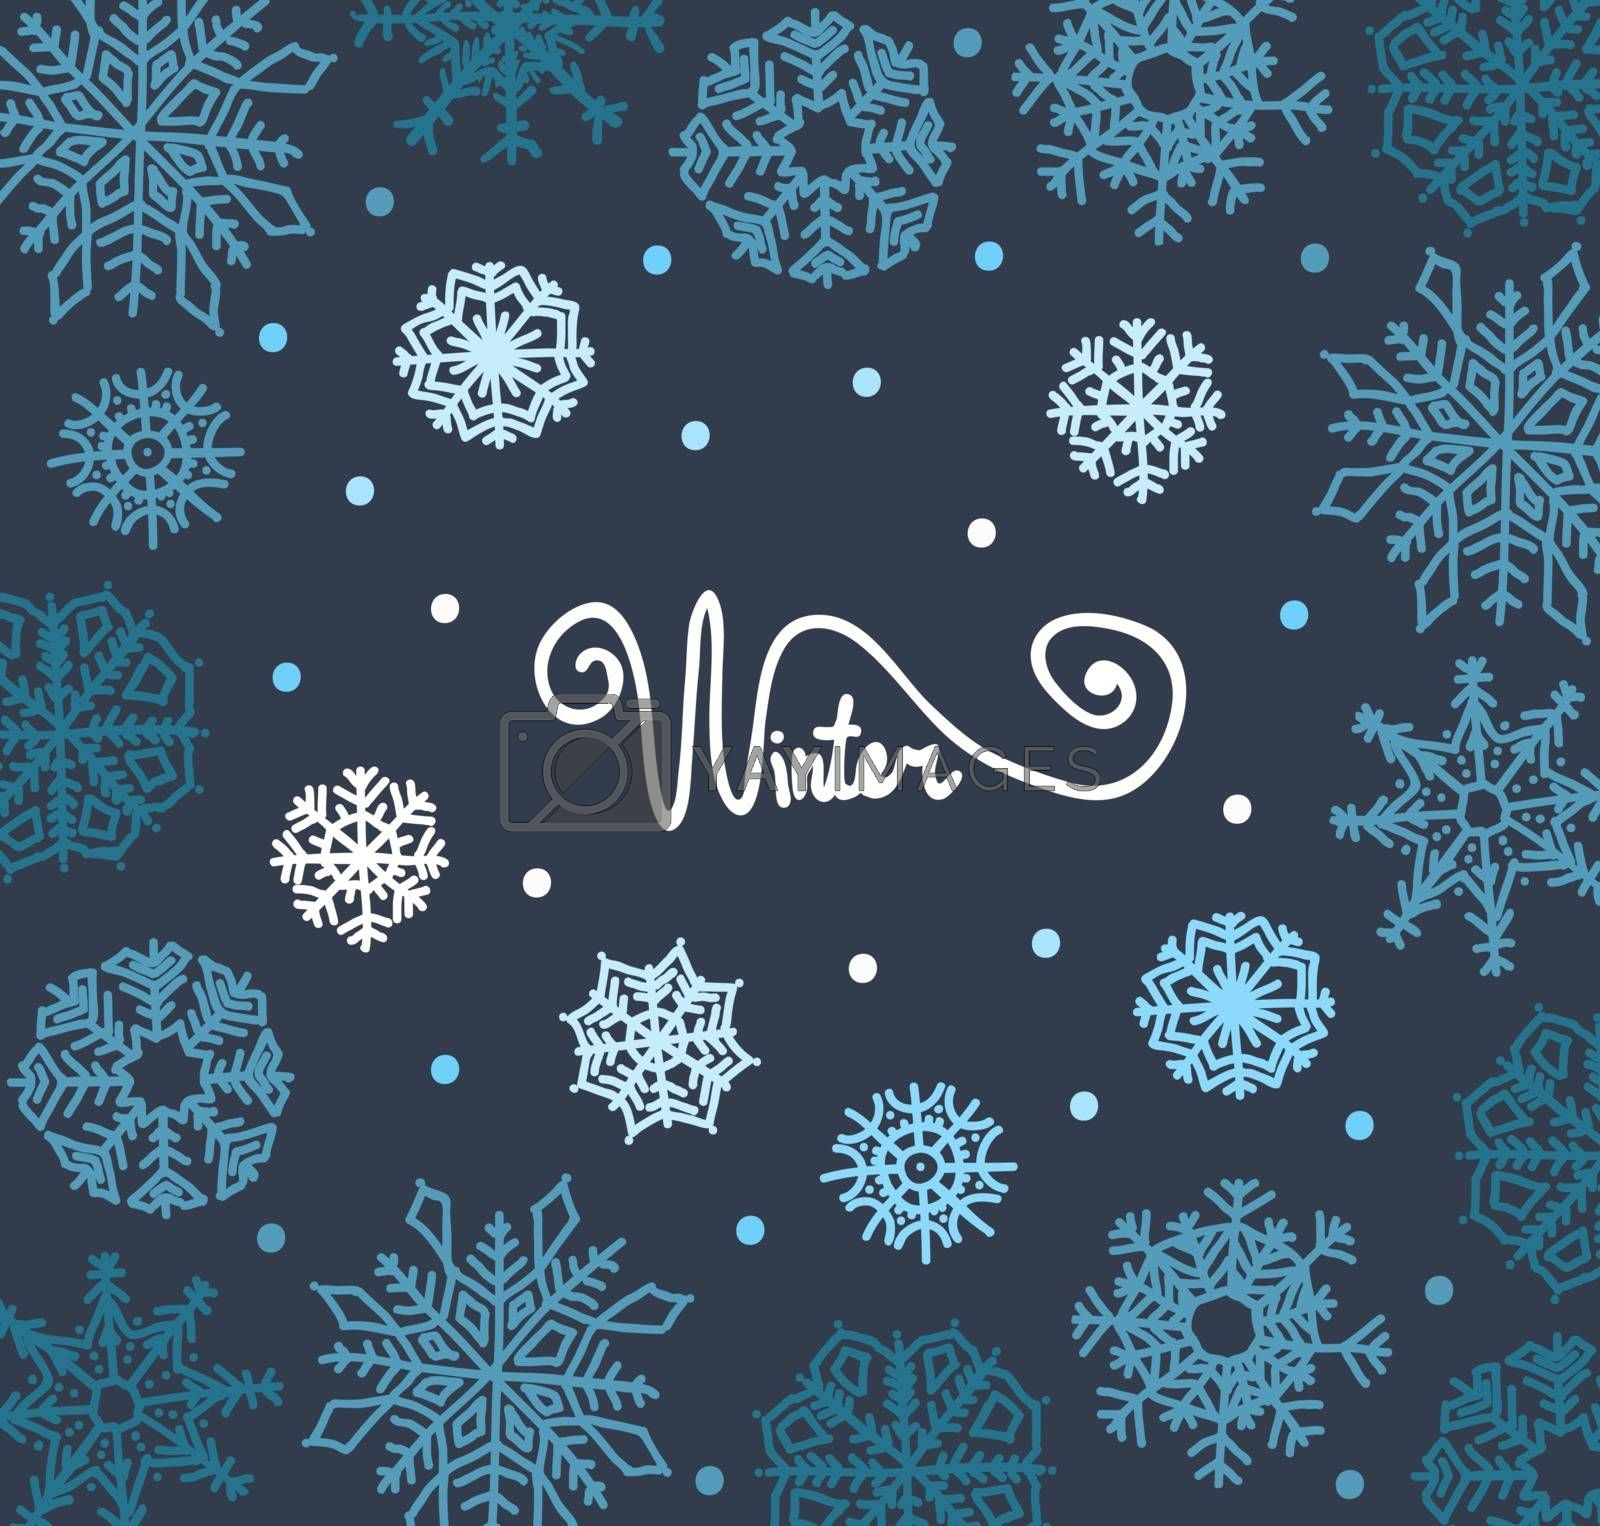 Beautiful background of snowflakes,  for winter design